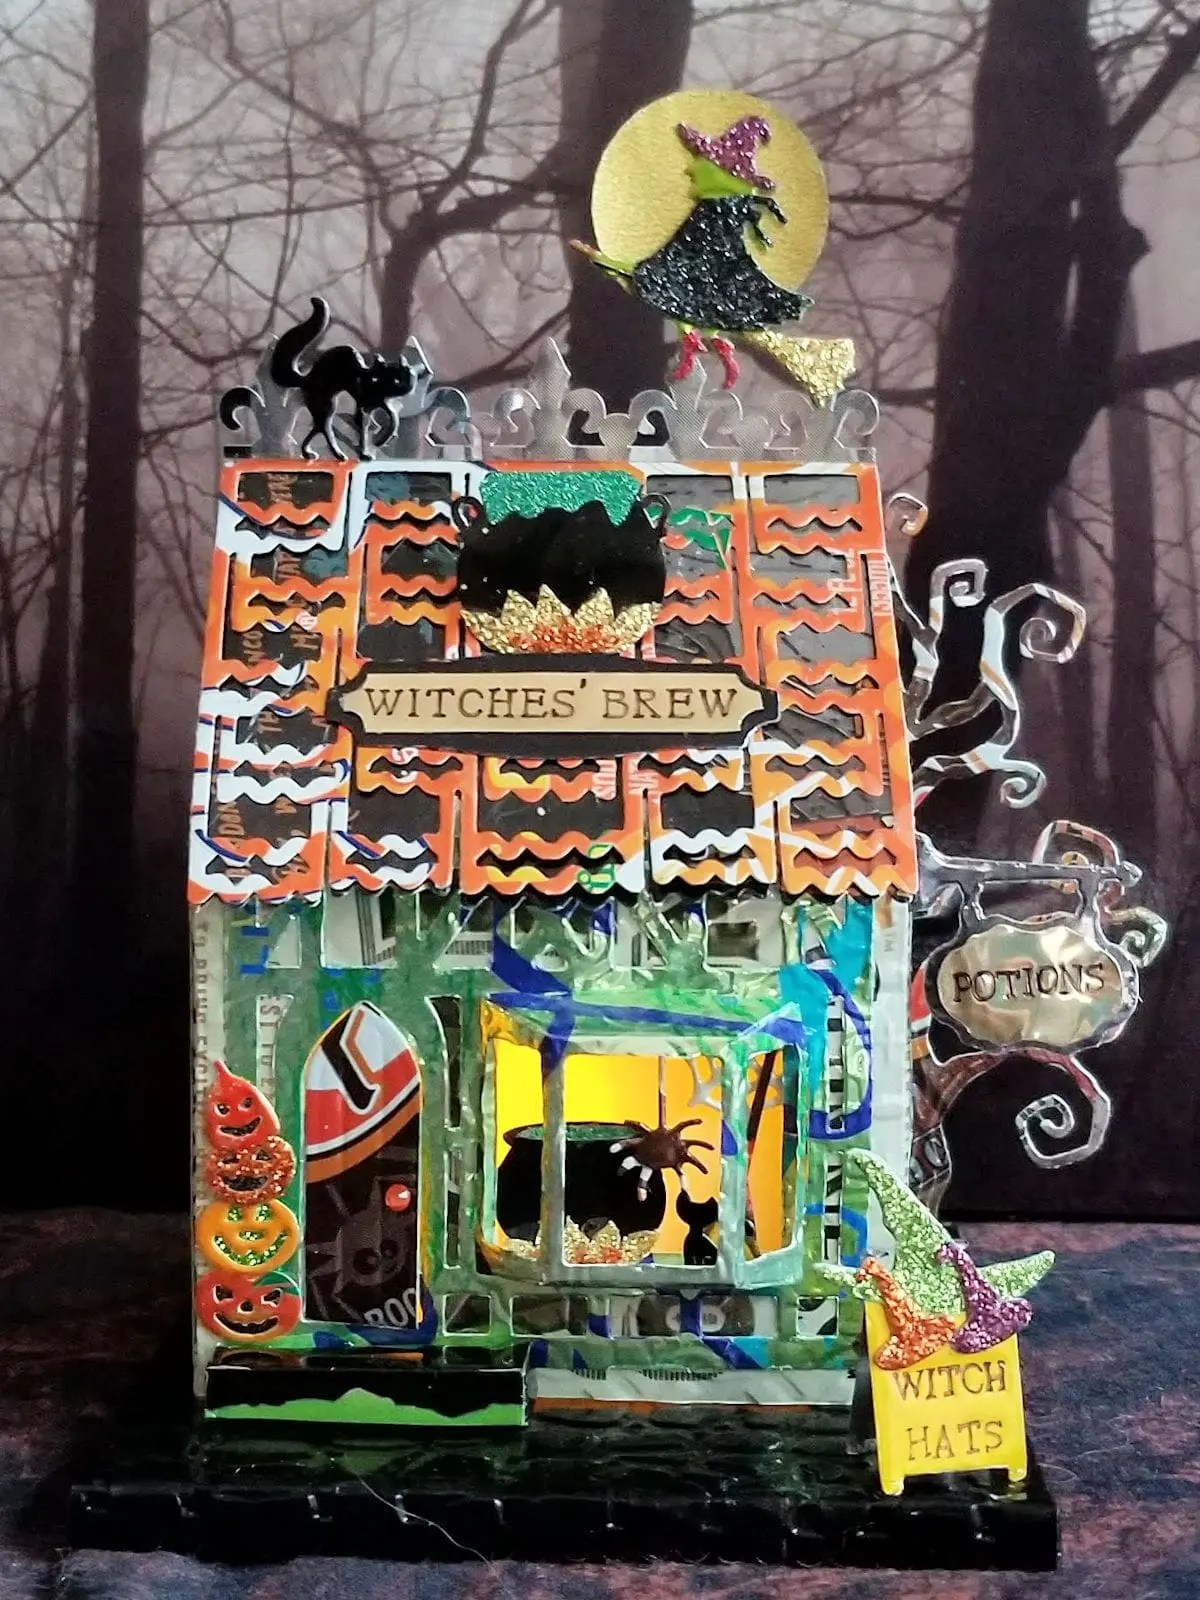 Witches Brew #1 aluminum can house